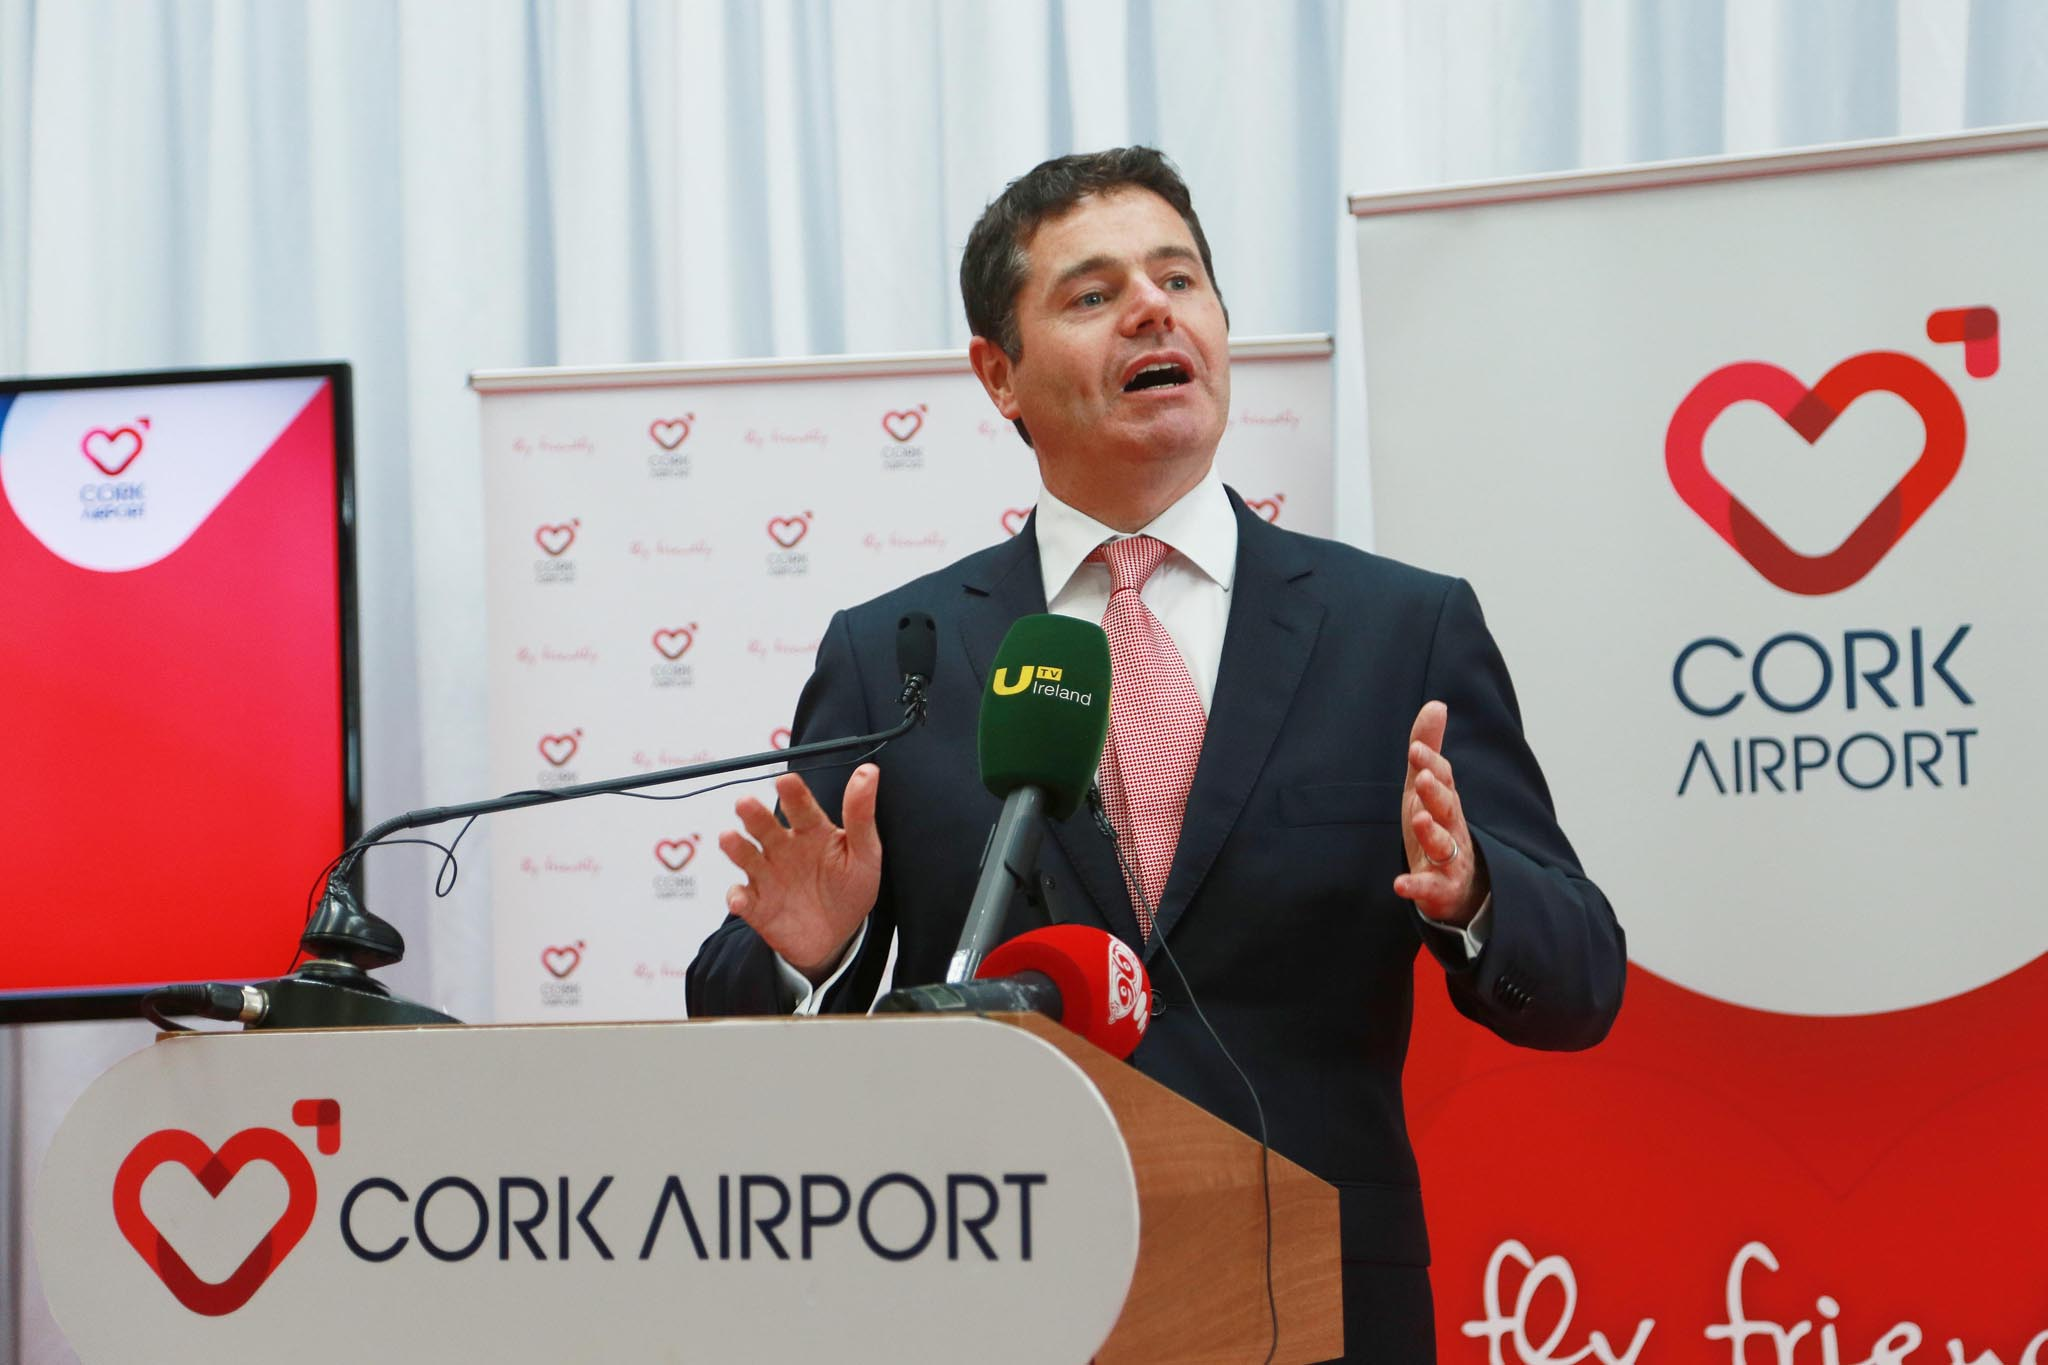 "CORK AIRPORT WELCOMES NEW AER LINGUS DÜSSELDORF ROUTE Cork Airport welcomes today's announcement that Aer Lingus is to operate a new Düsseldorf service for summer 2016. The new service, which will commence in May 2016, will operate twice weekly on Wednesday and Sunday. The announcement was made by Minister for Transport, Tourism and Sport, Paschal Donohoe TD at a press conference at Cork Airport. Minister Donohoe was also accompanied by Aer Lingus CEO Stephen Kavanagh. Welcoming the announcement of the new route, Cork Airport Managing Director, Niall MacCarthy said: ""We're delighted that Aer Lingus has added Düsseldorf to its schedule of services from Cork Airport; it's great news for business and leisure passengers in the region."" Pictured is Minister for Transport, Tourism and Sport, Paschal Donohoe. Picture: Miki Barlok"